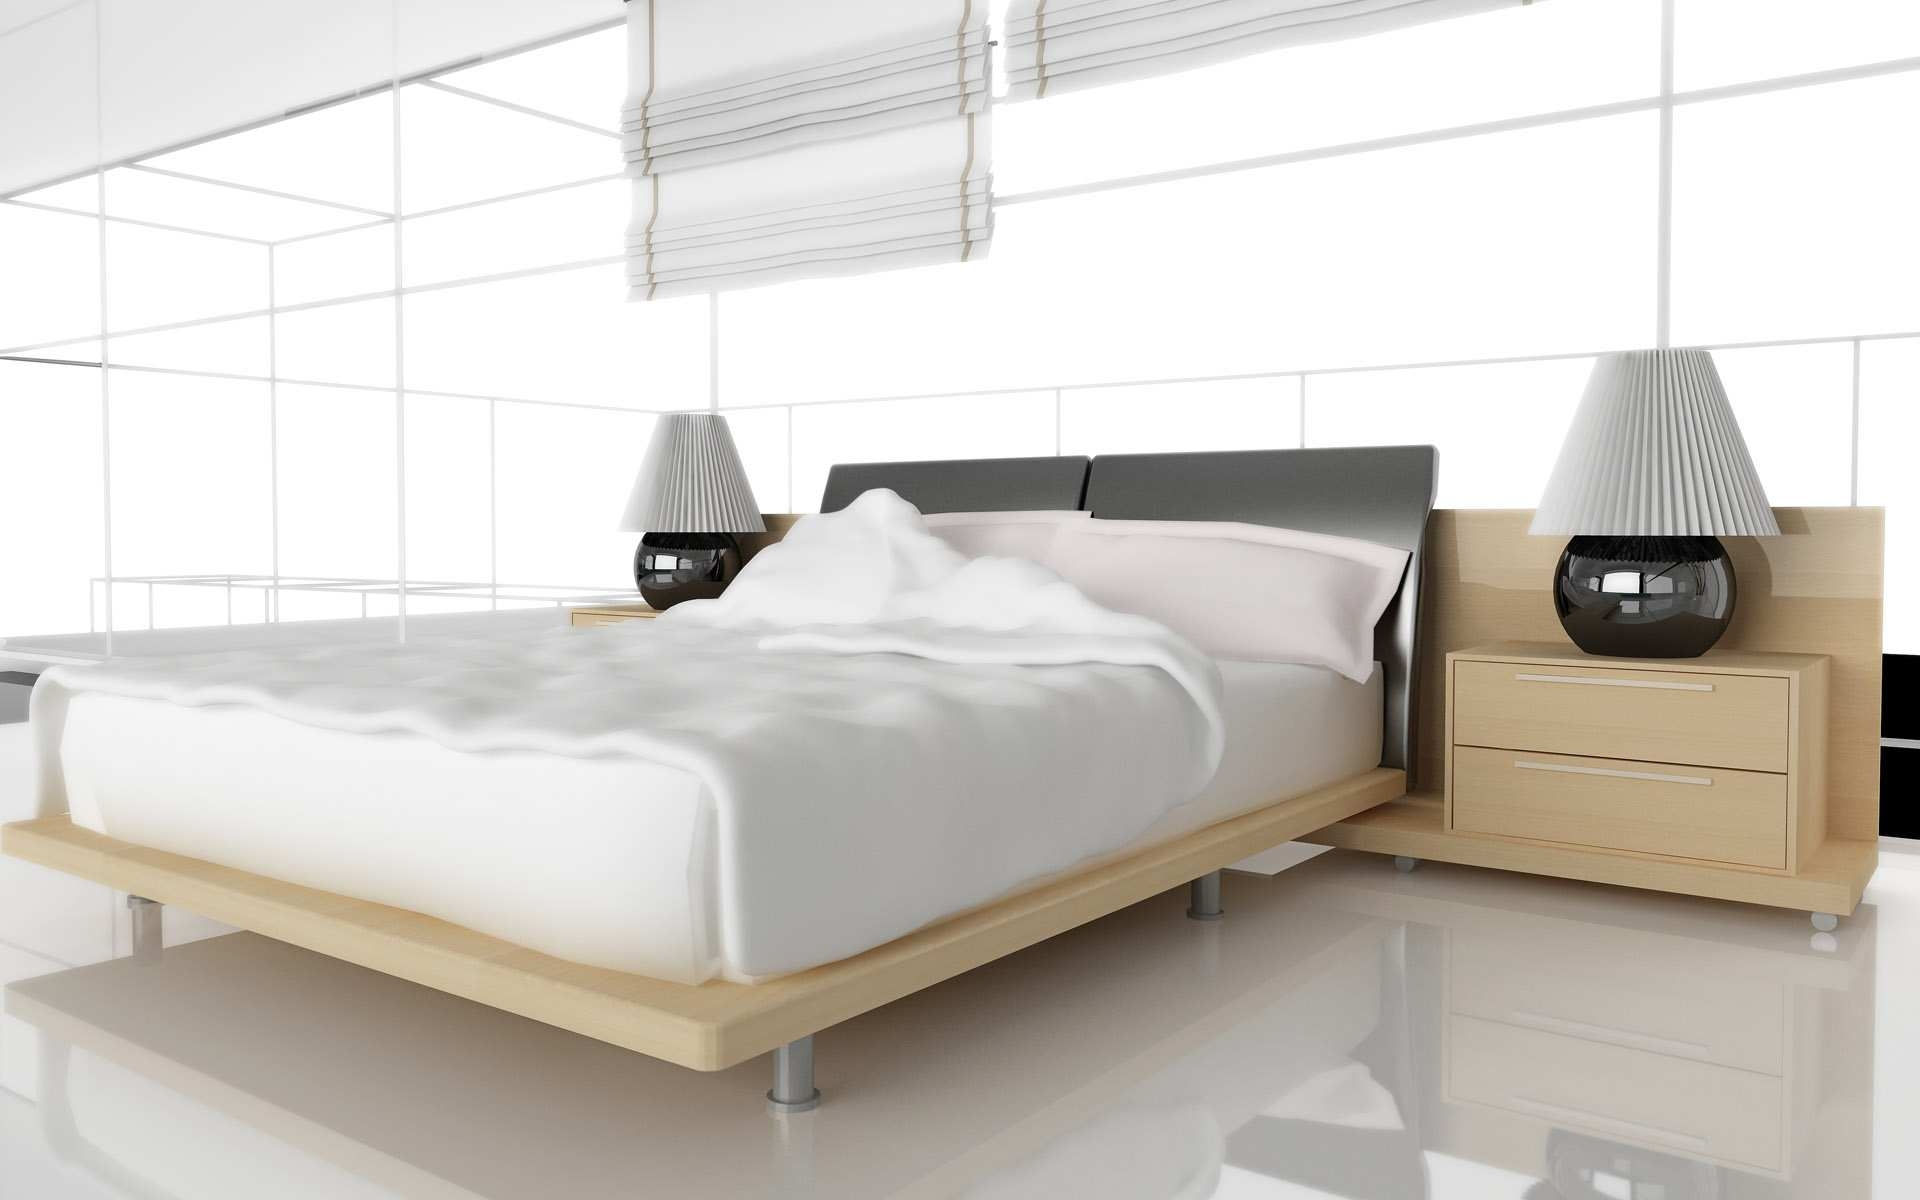 Bed that Folds into Wall, Best Solution for Small Bedroom Space ...